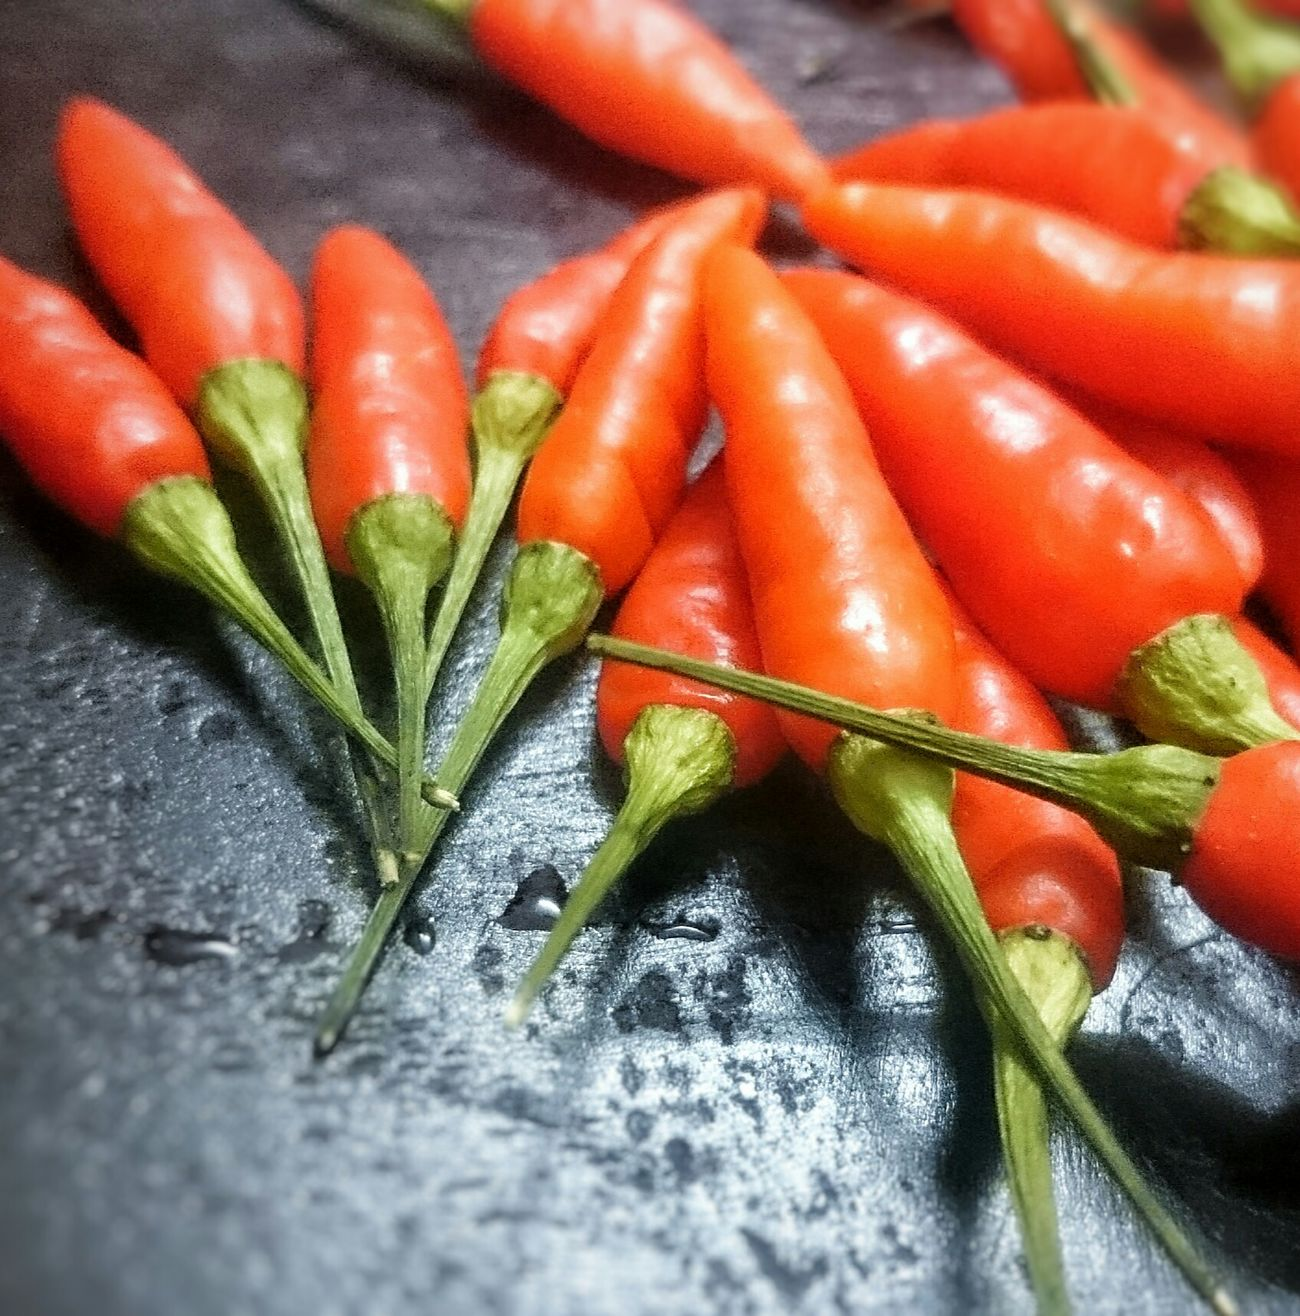 The Chilies Chilies Healthy Eating Indoors  No People Food Red Freshness Colorful Colour Of Life